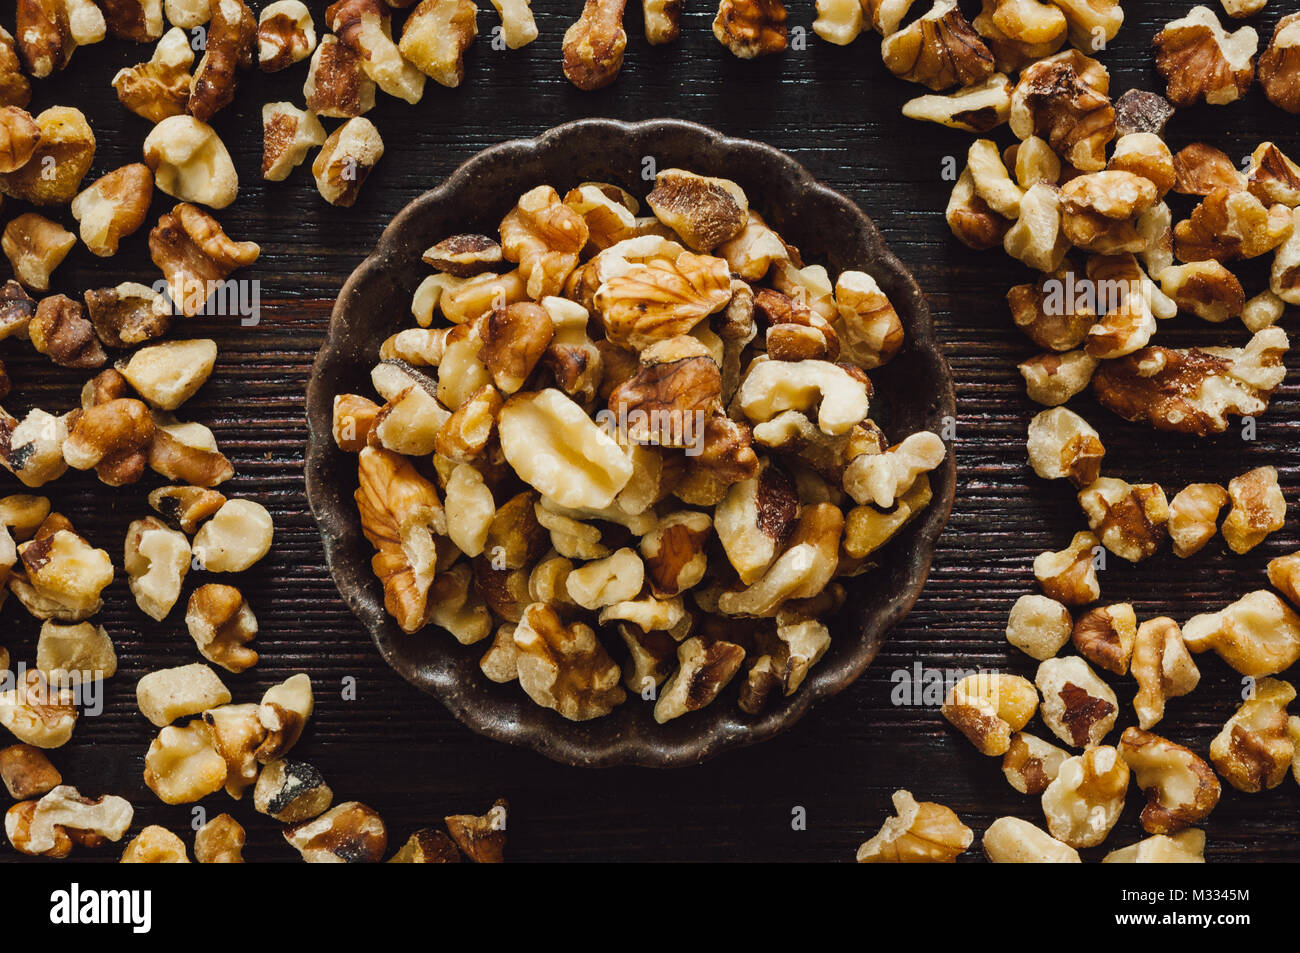 Chopped Walnuts Arranged on Dark Table - Stock Image